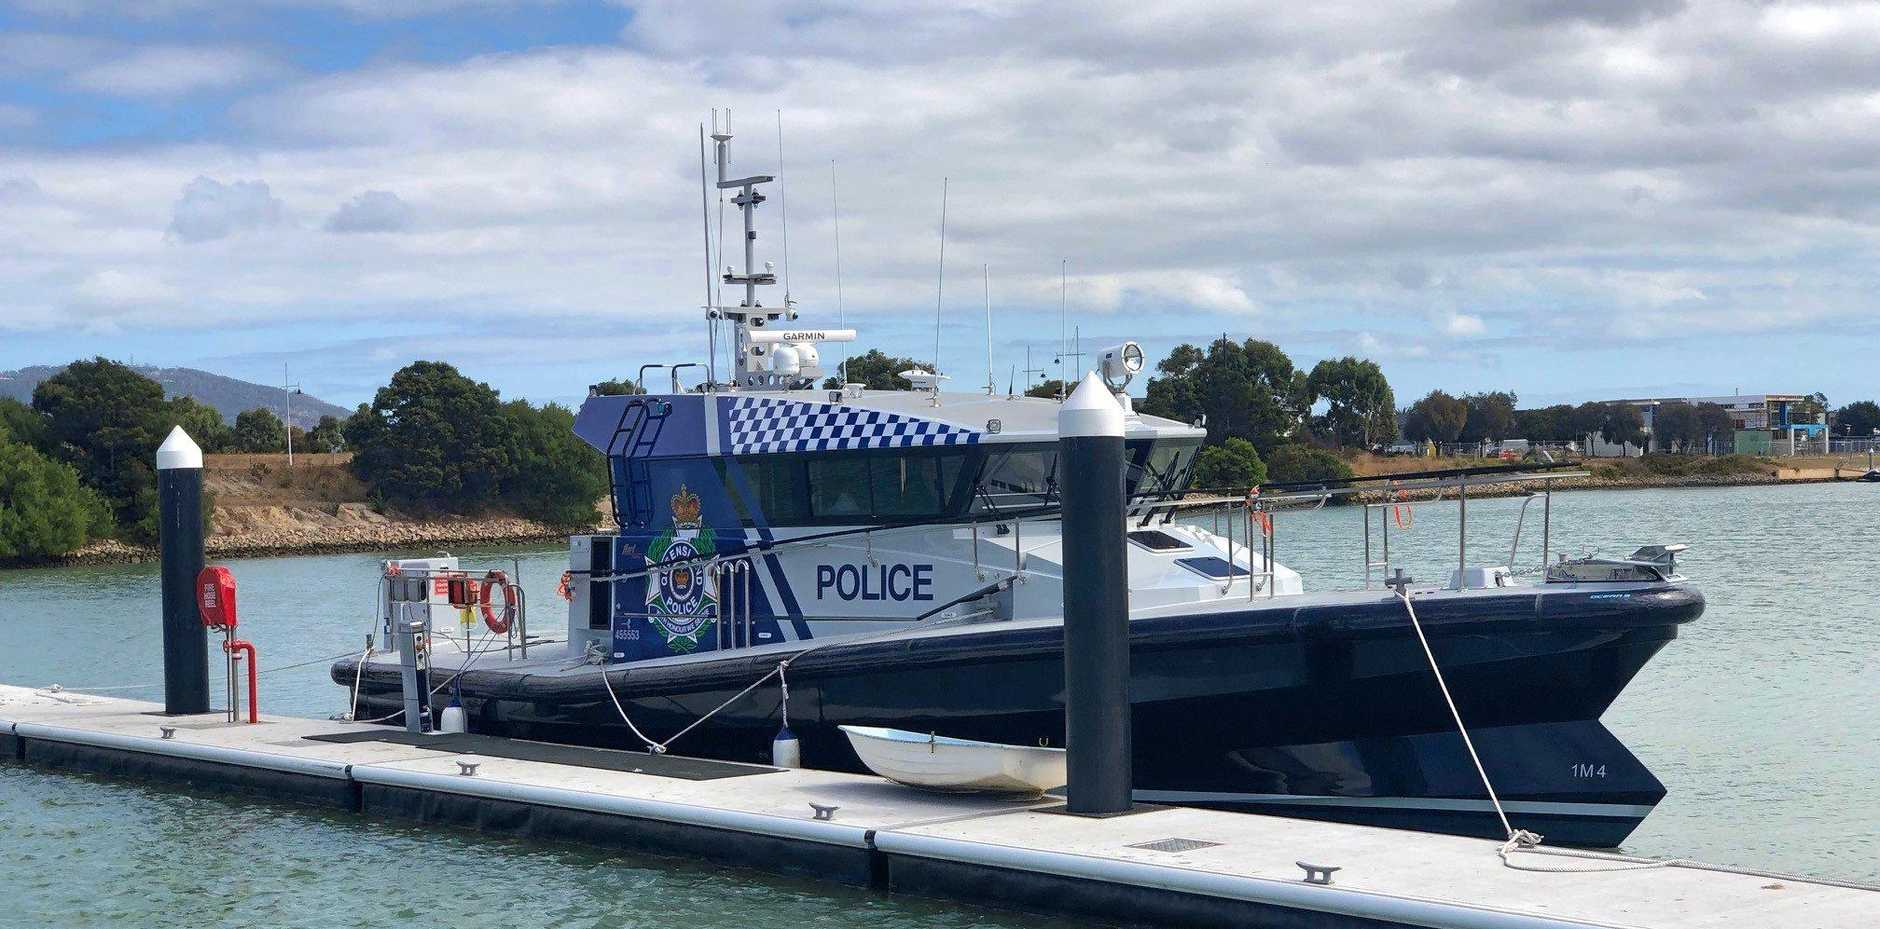 Sunshine Coast Water Police's new boat is being tested in Victoria before delivery to Mooloolaba.